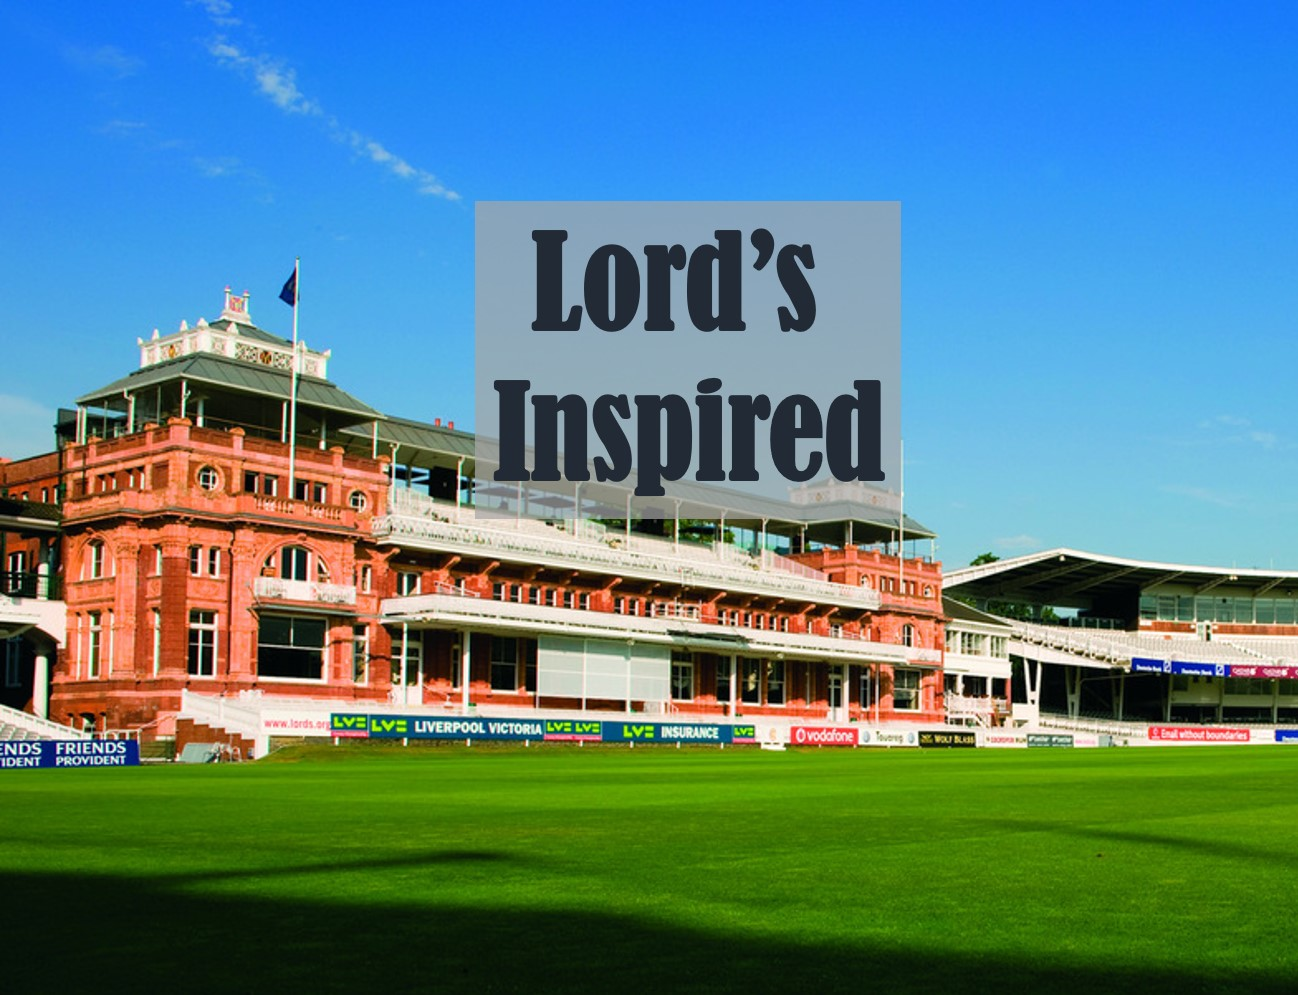 OUR SPORT TO BUSINESS IGNITION SESSIONS INSPIRED BY THE HOME OF ENGLISH CRICKET. WE BRING TO YOU EX-PRO CRICKETERS TO IGNITE THINKING. WE CAN PROVIDE CRICKETING MASTERCLASSES IN THE LORD'S NURSERY NETS AND LUNCH/ DINNER IN THE FAMOUS LORD'S LONG ROOM.